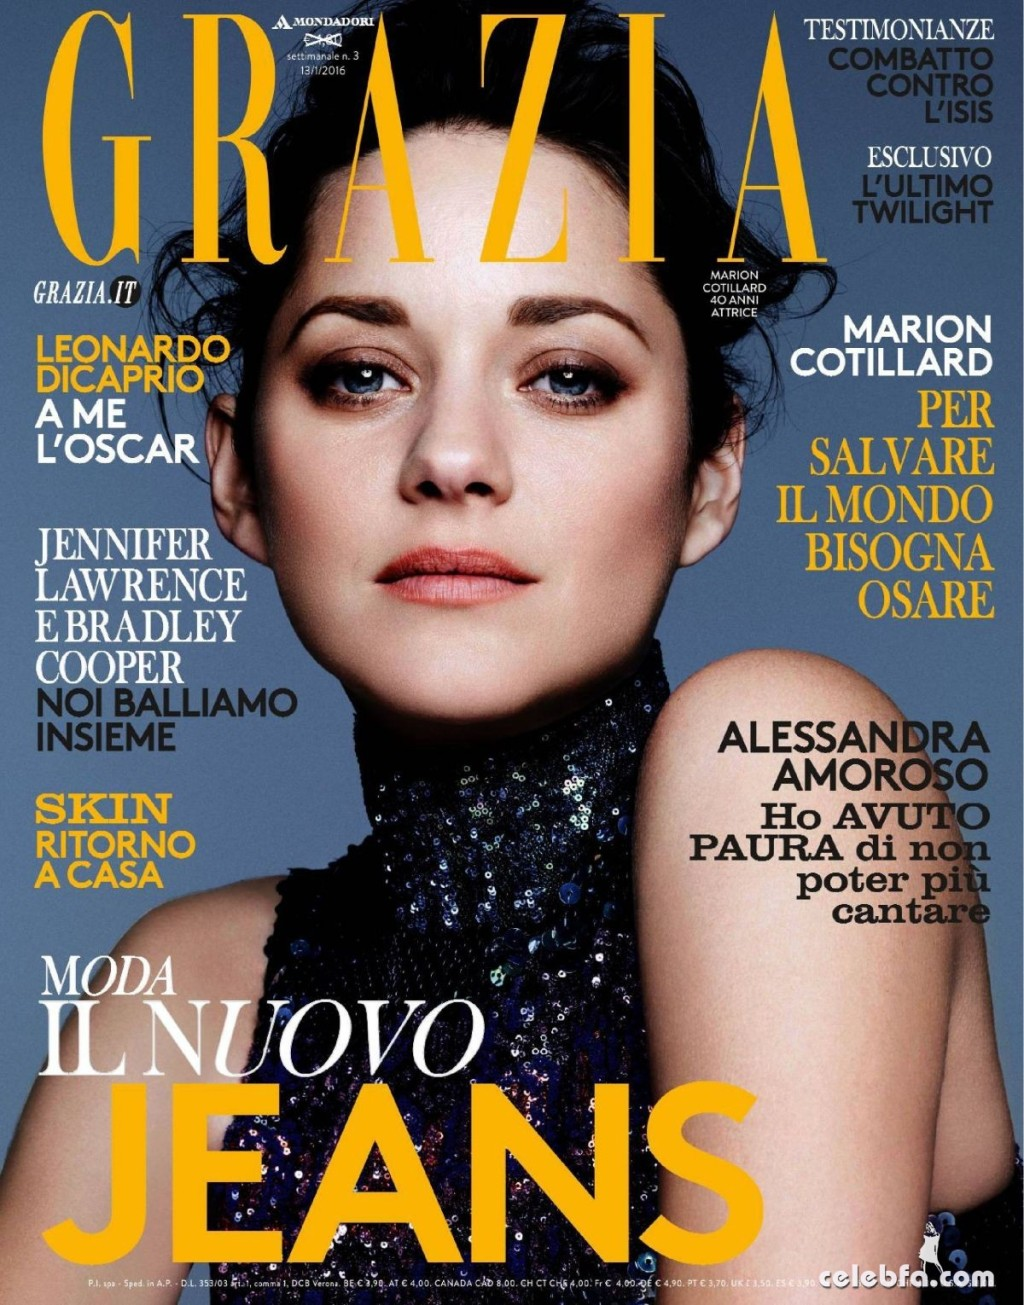 marion-cotillard-in-grazia-magazine-italy-january-2016 (1)